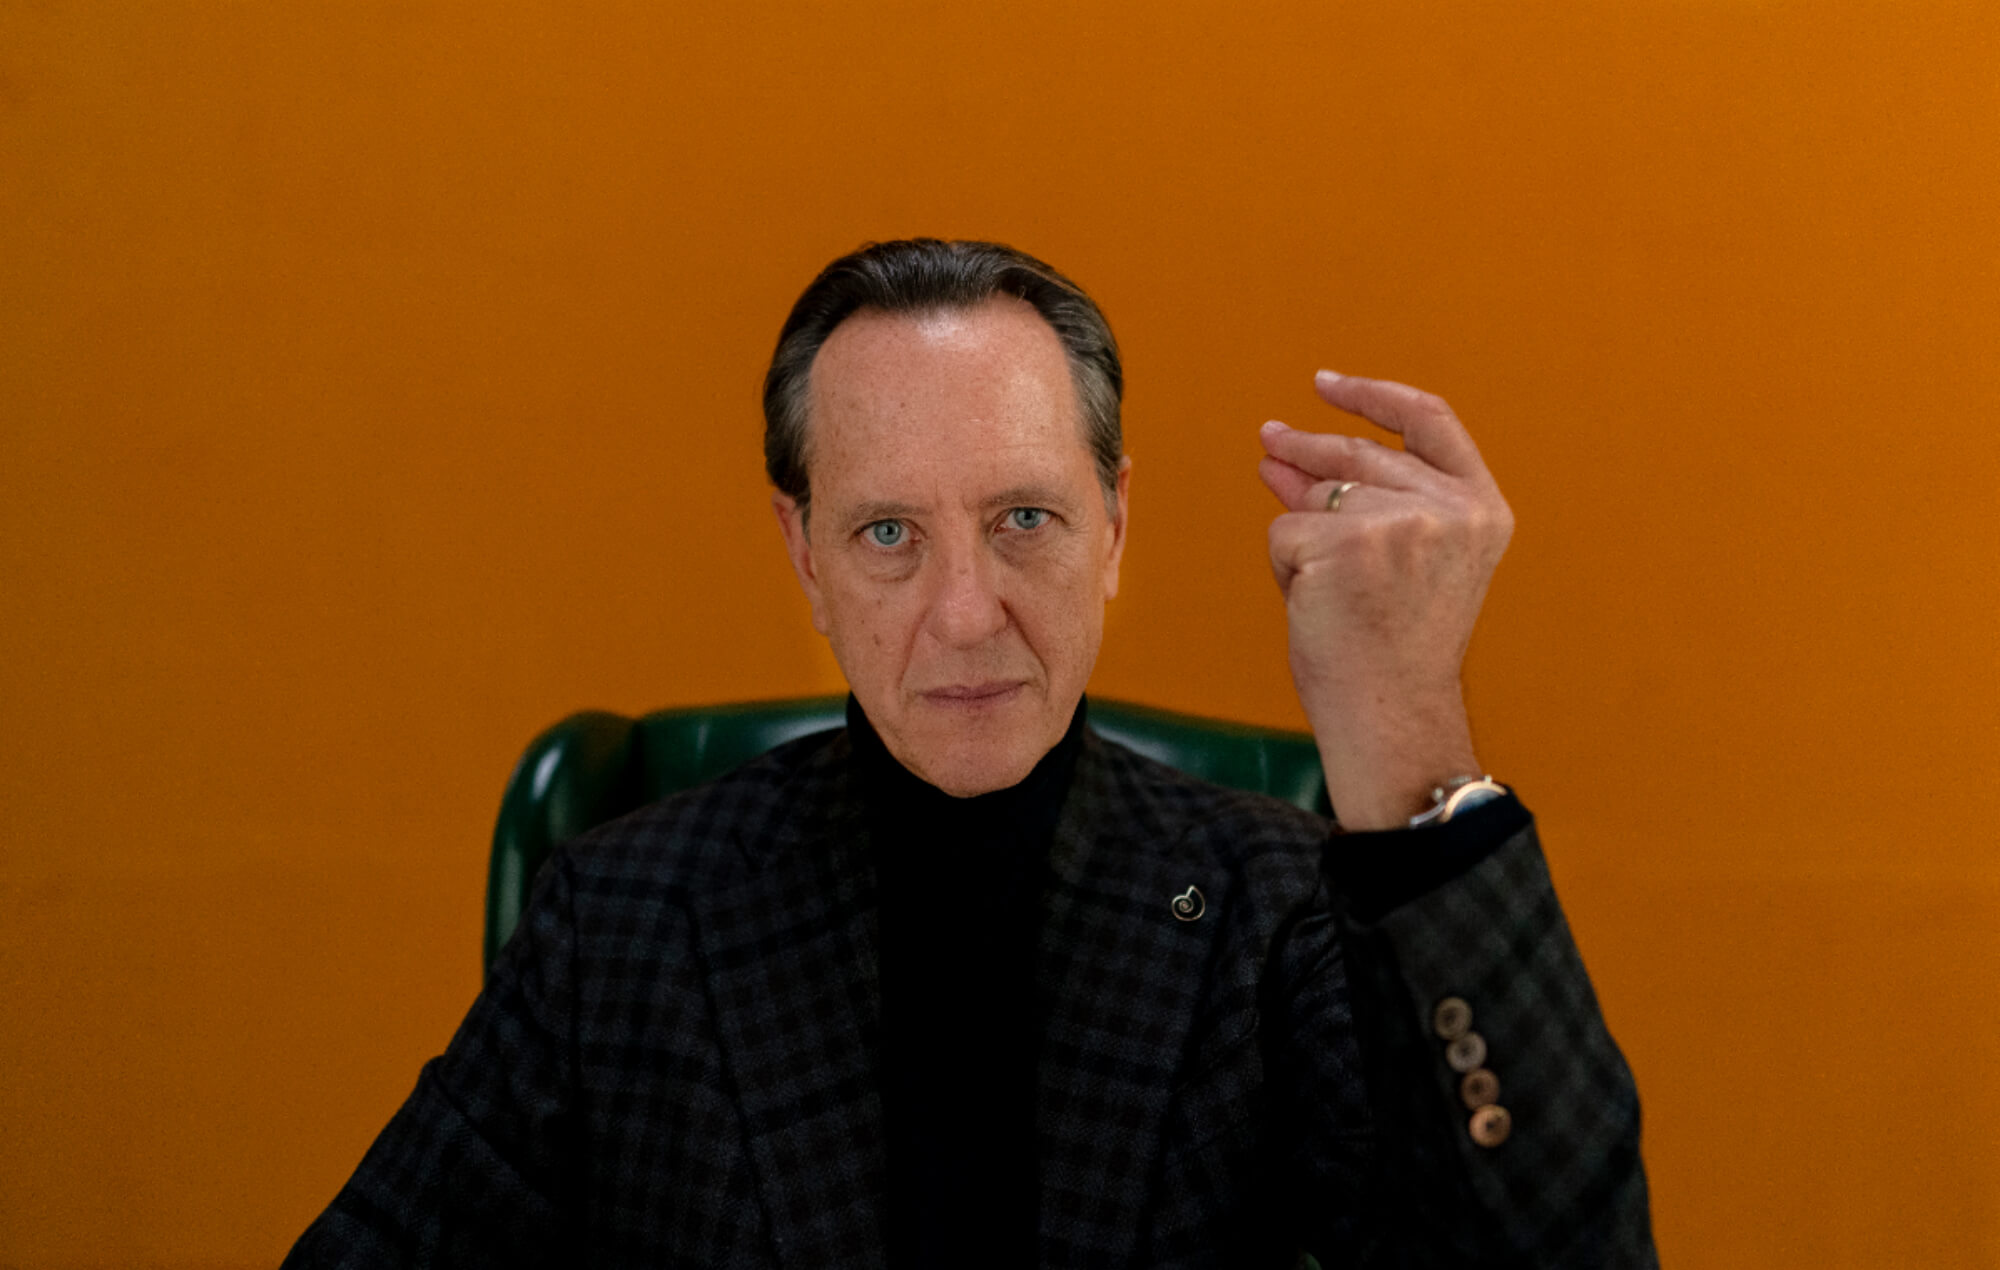 Richard E. Grant-starring 'Dispatches From Elsewhere' UK premiere date announced